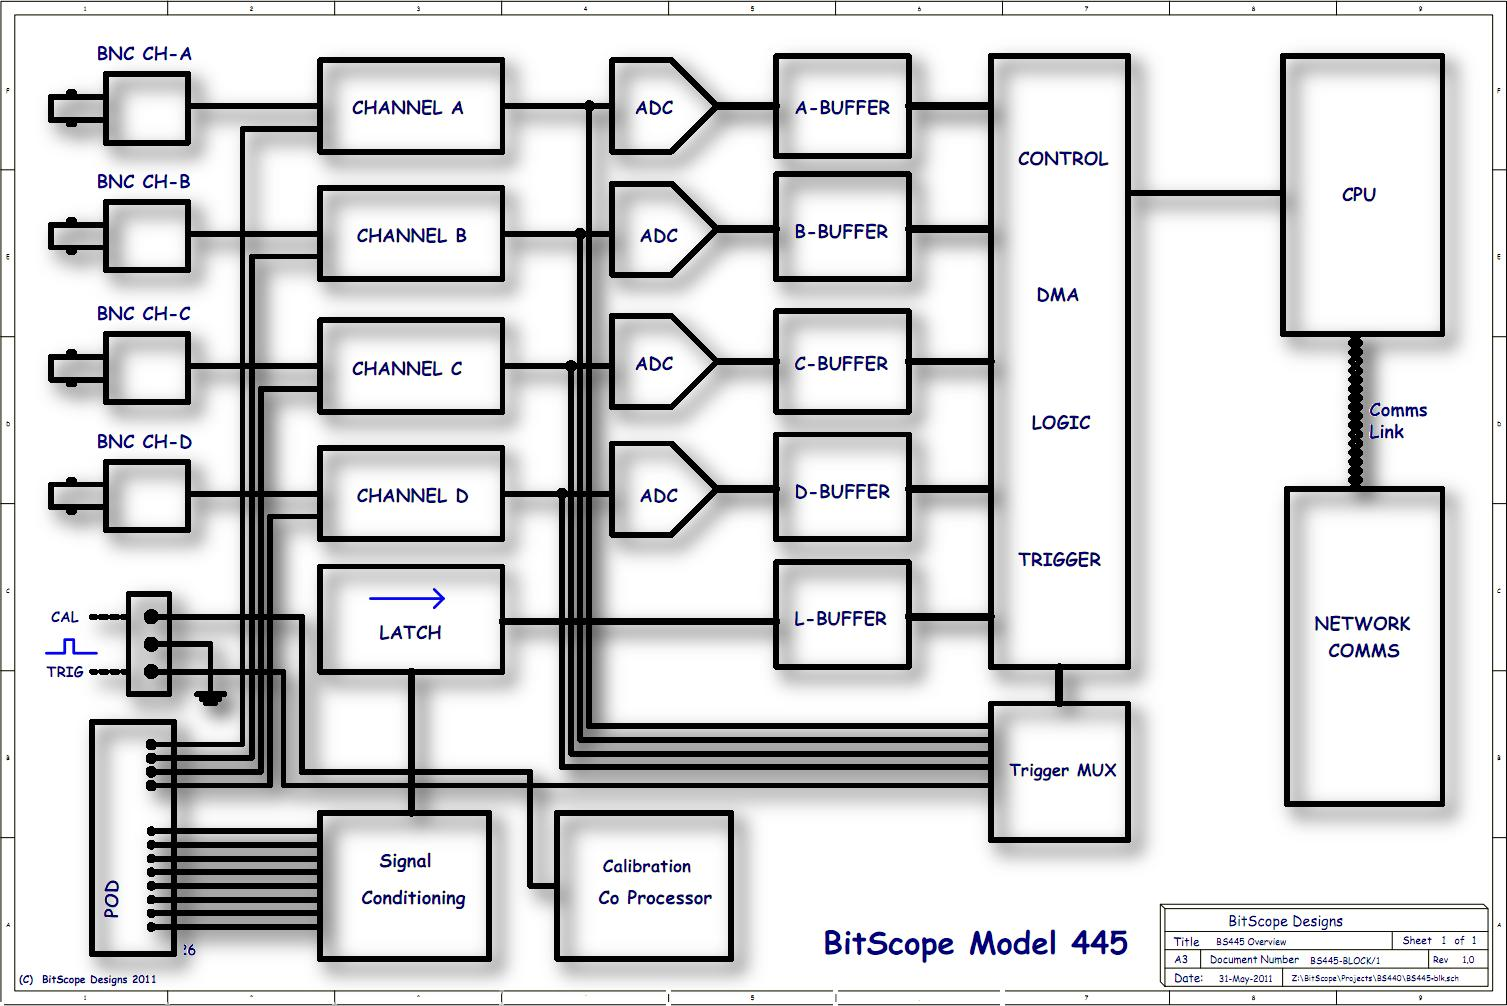 Bitscope Model 445 12 Channel Pc Oscilloscope Network Connected Logic Analyzer Diagram Bs445 Block